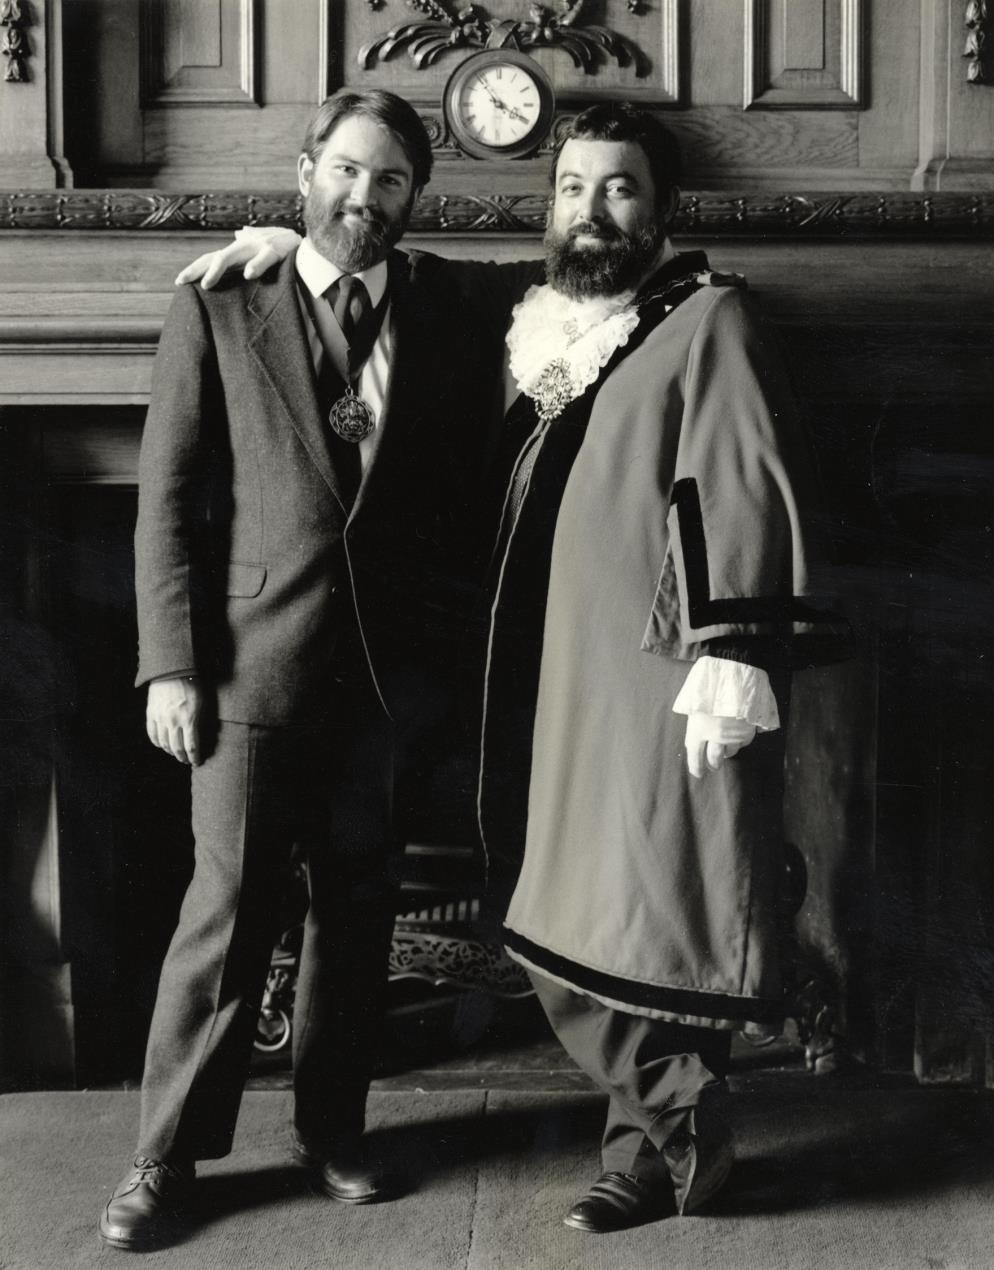 Robert_Crossman%2c_who_in_1986_became_Mayor_of_Islington_and_the_UK%e2%80%99s_first_openly_gay_Mayor%2c_and_his_consort_Martin_McCloghry